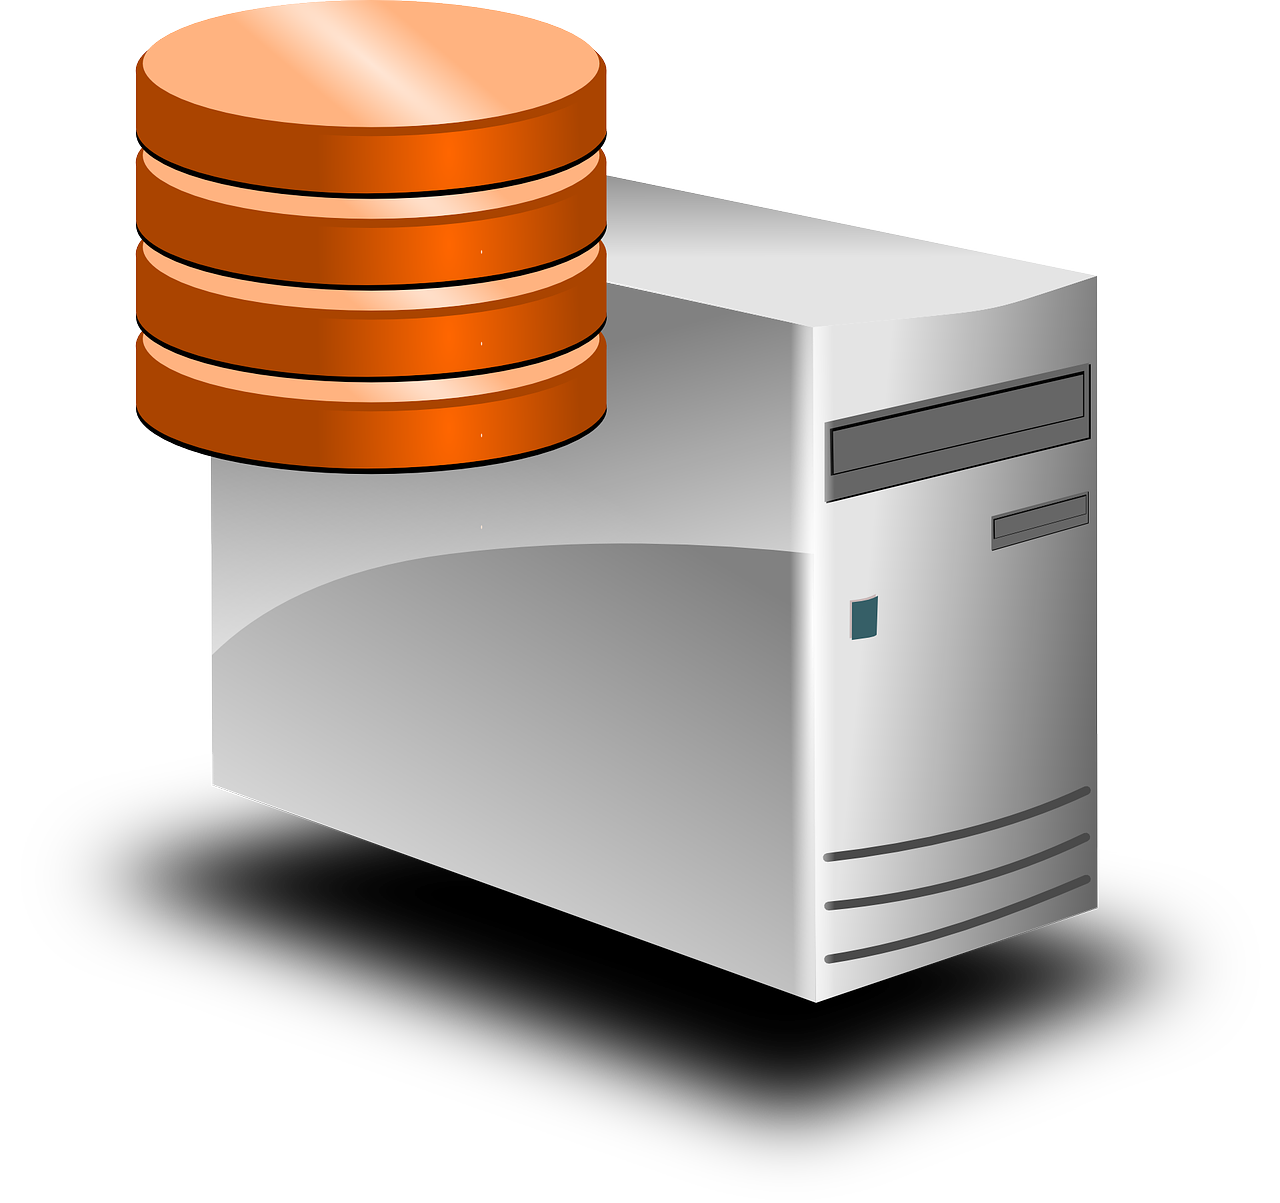 Data access and retrieval tools